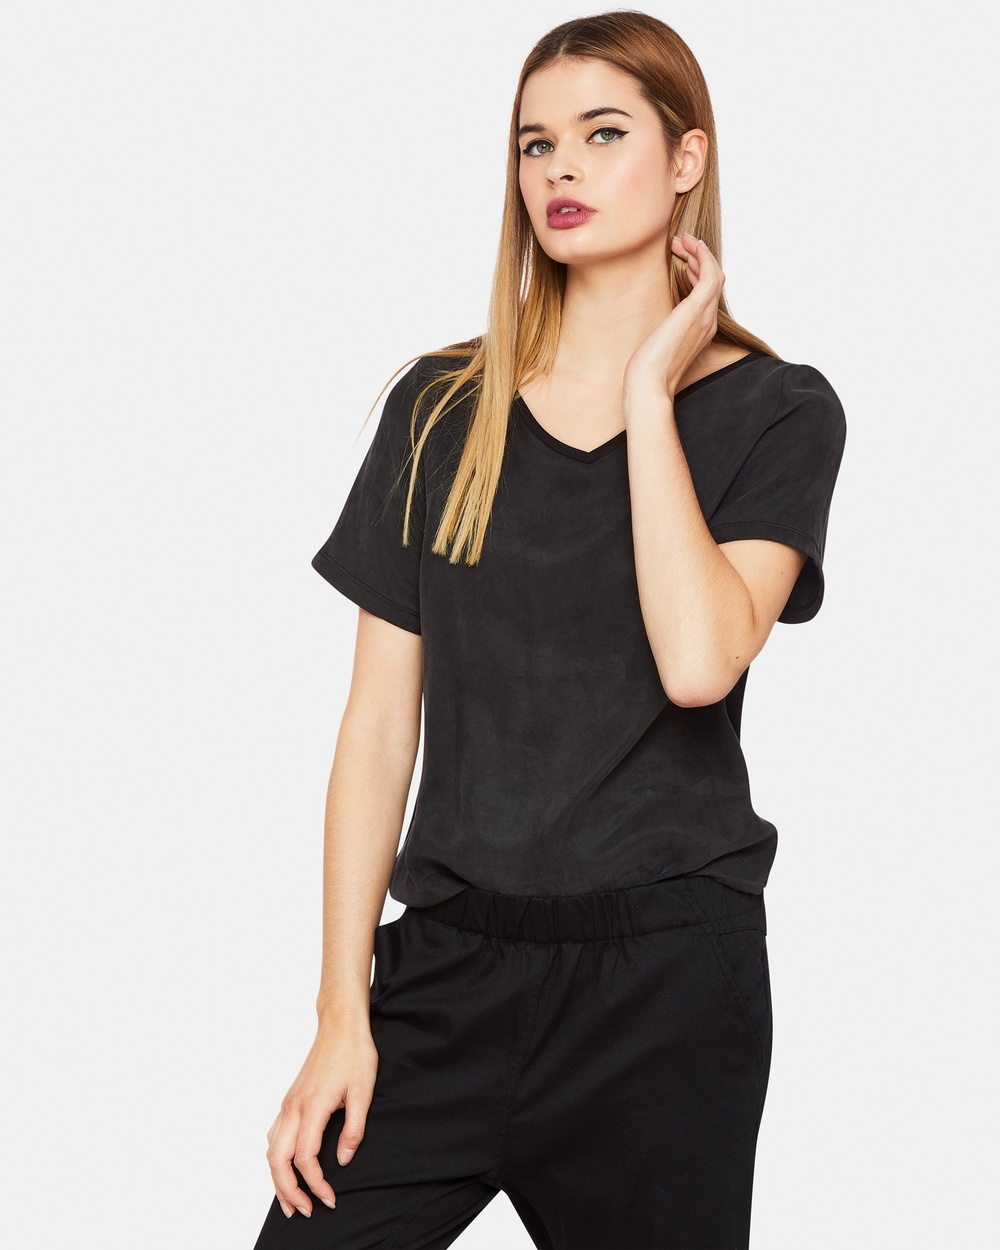 Oxford LAYLA WOVEN FRONT V NECK T SHIRT Tops Black LAYLA WOVEN FRONT V-NECK T-SHIRT